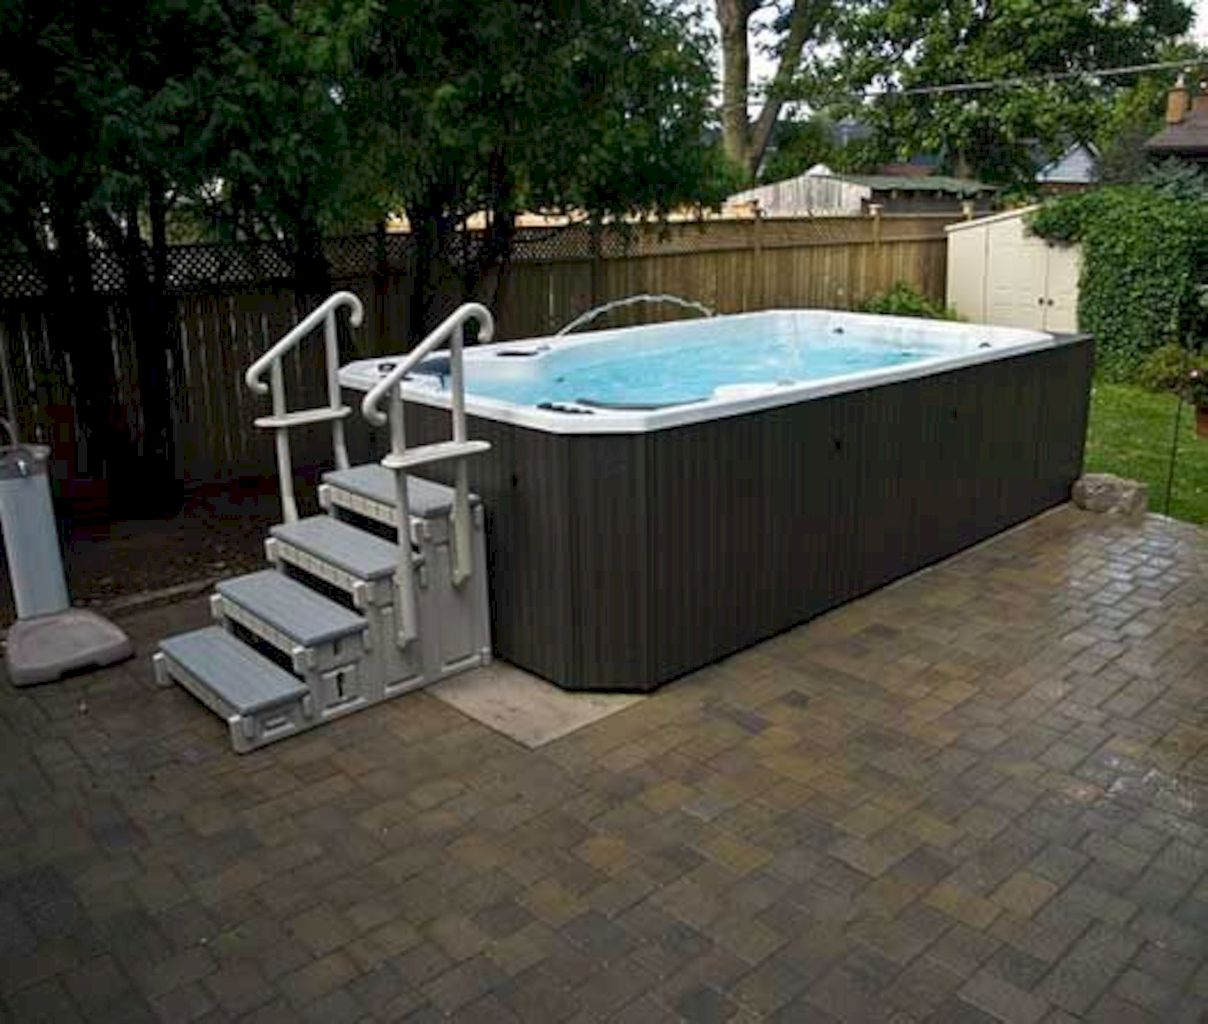 Simple pool designs built above ground designed with cheap materials for simple outdoor relieves Image 1